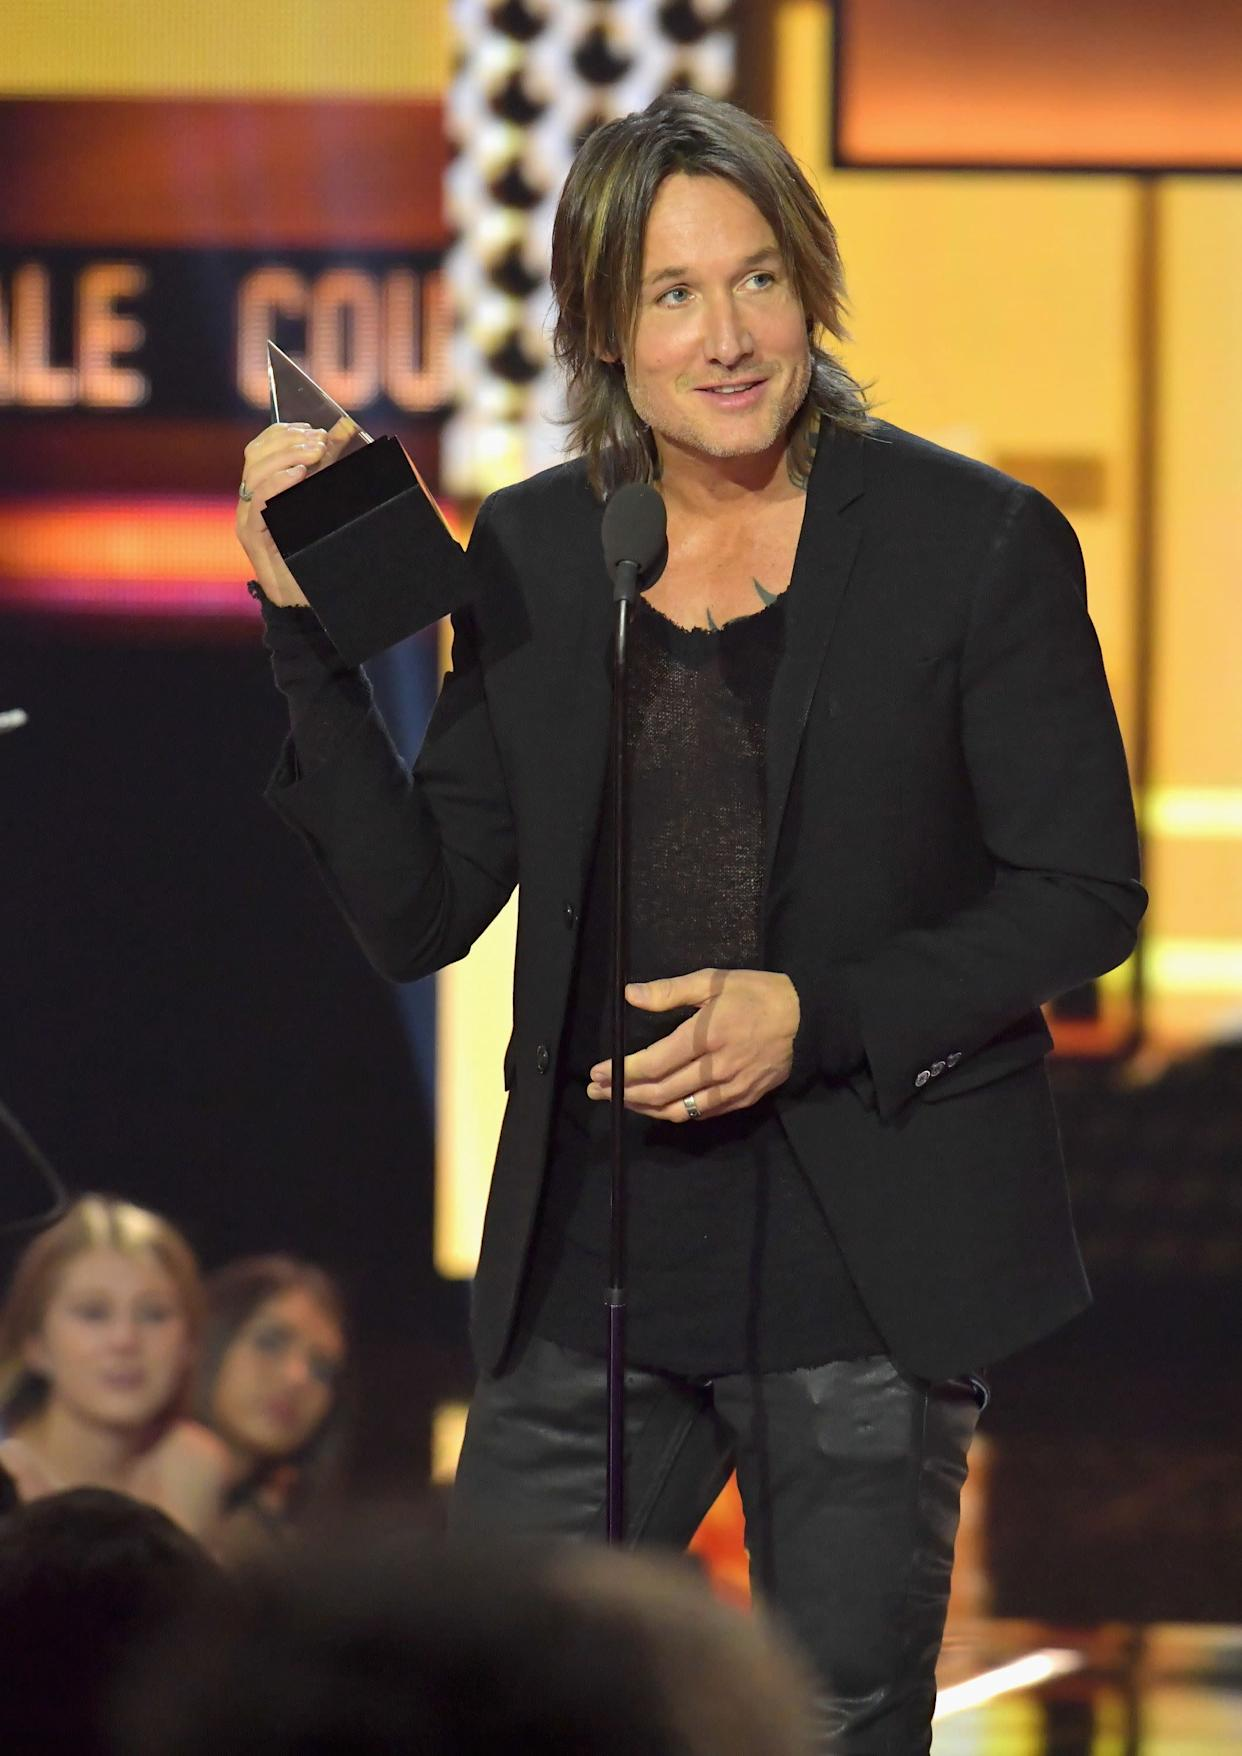 LOS ANGELES, CA - NOVEMBER 19: Keith Urban accepts the Favorite Male Artist - Country, Favorite Album - Country and Favorite Song - Country awards onstage during the 2017 American Music Awards at Microsoft Theater on November 19, 2017 in Los Angeles, California. (Photo by Lester Cohen/WireImage)